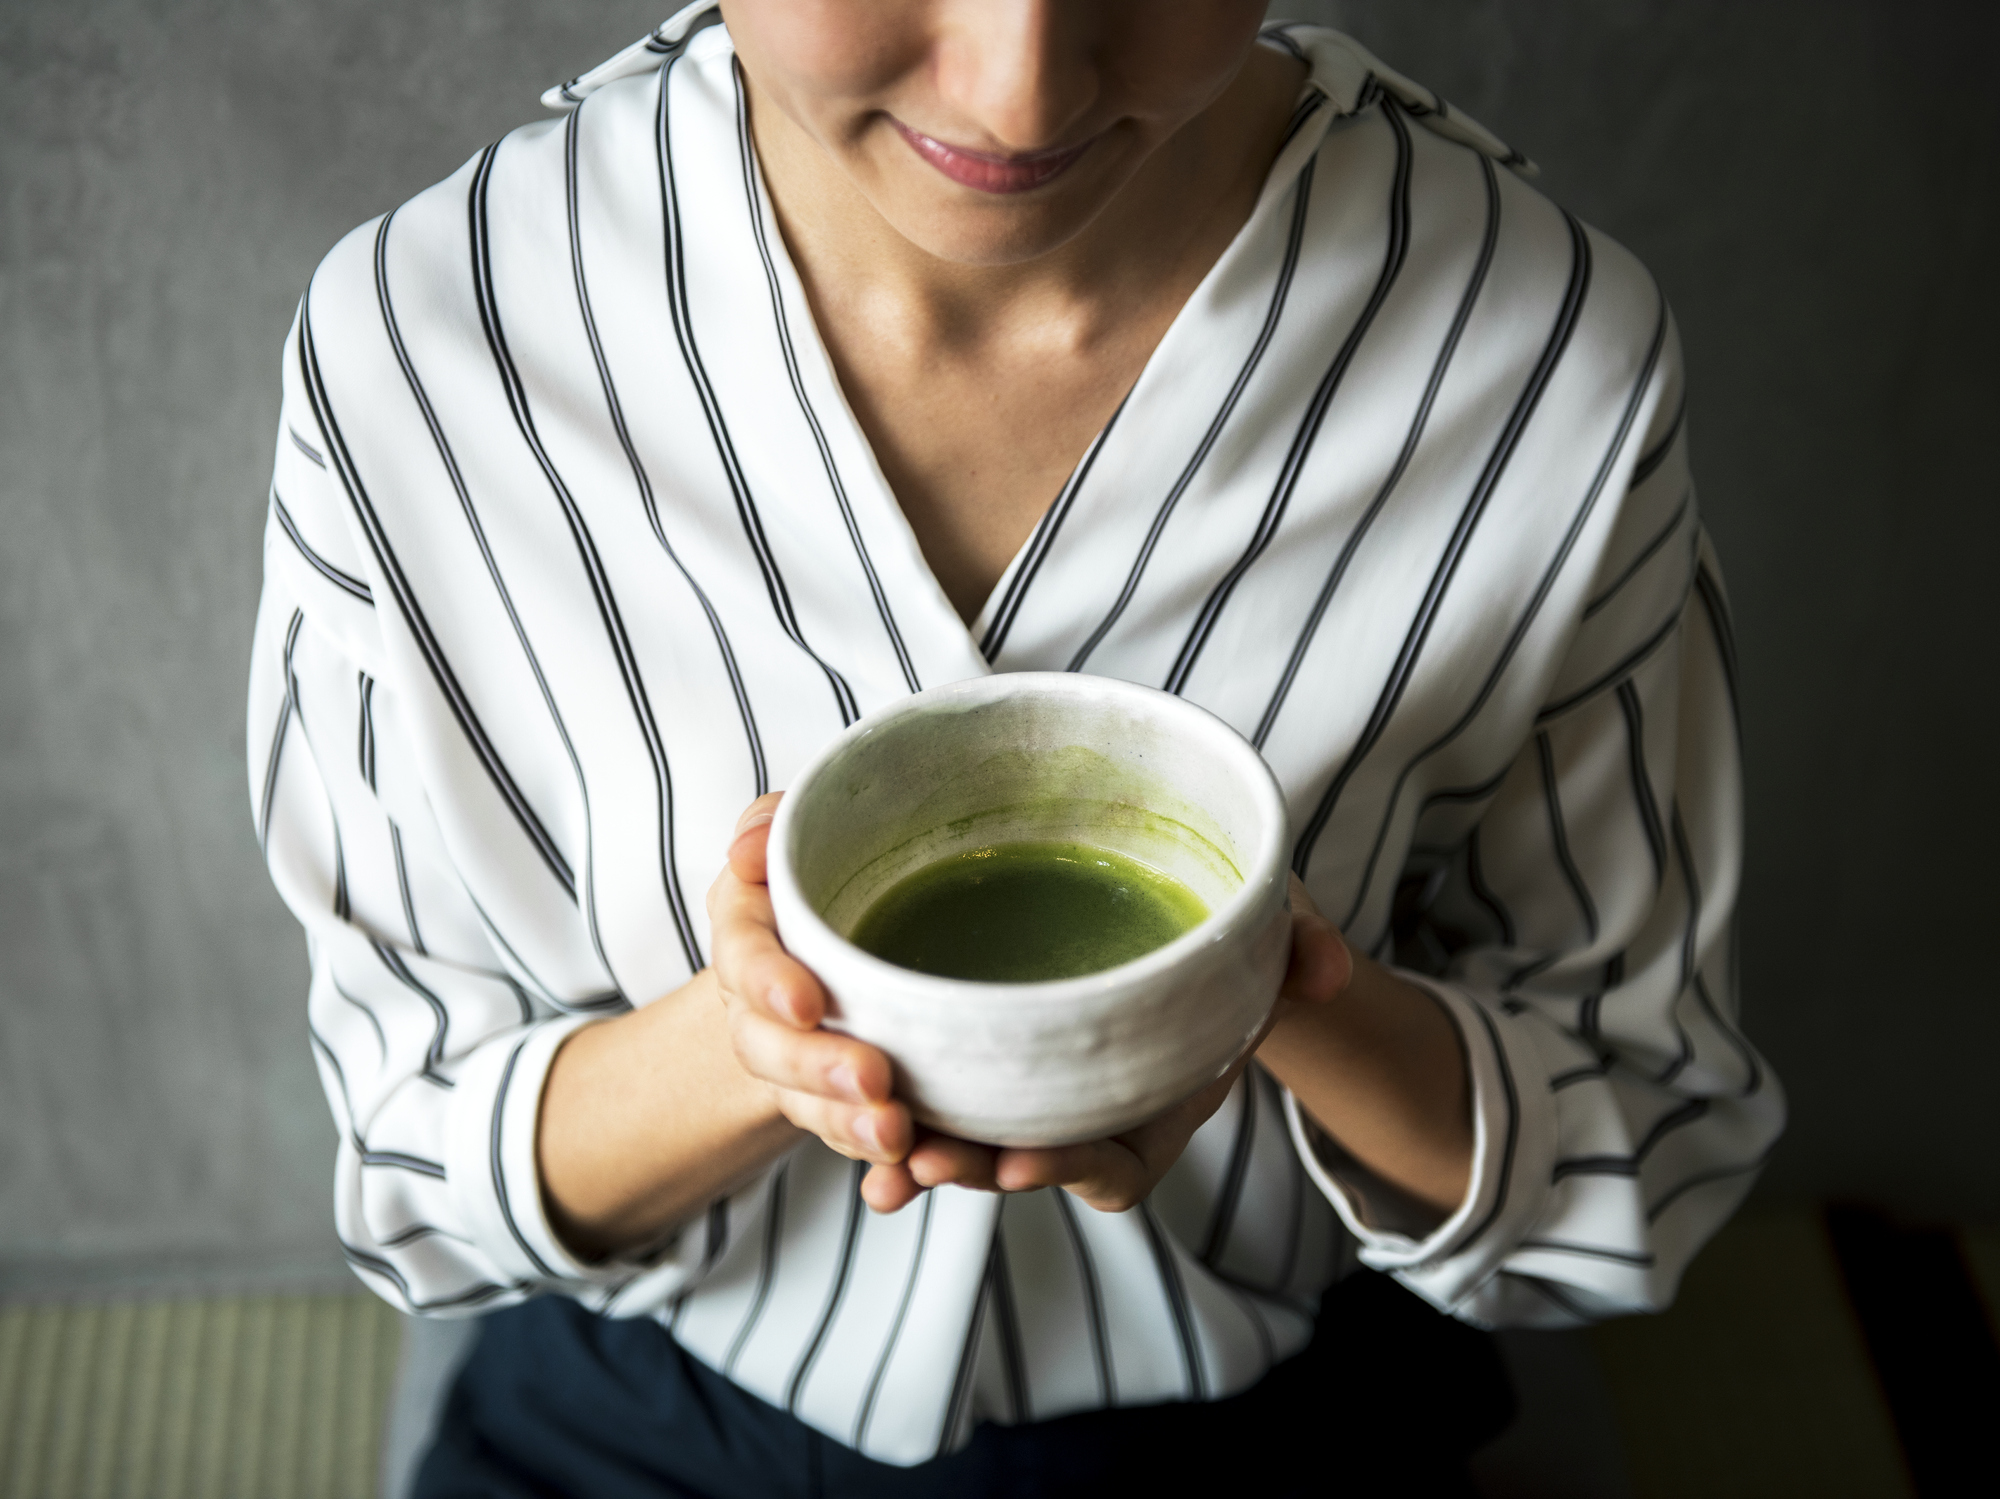 Chemicals in green tea could help deactivate the coronavirus